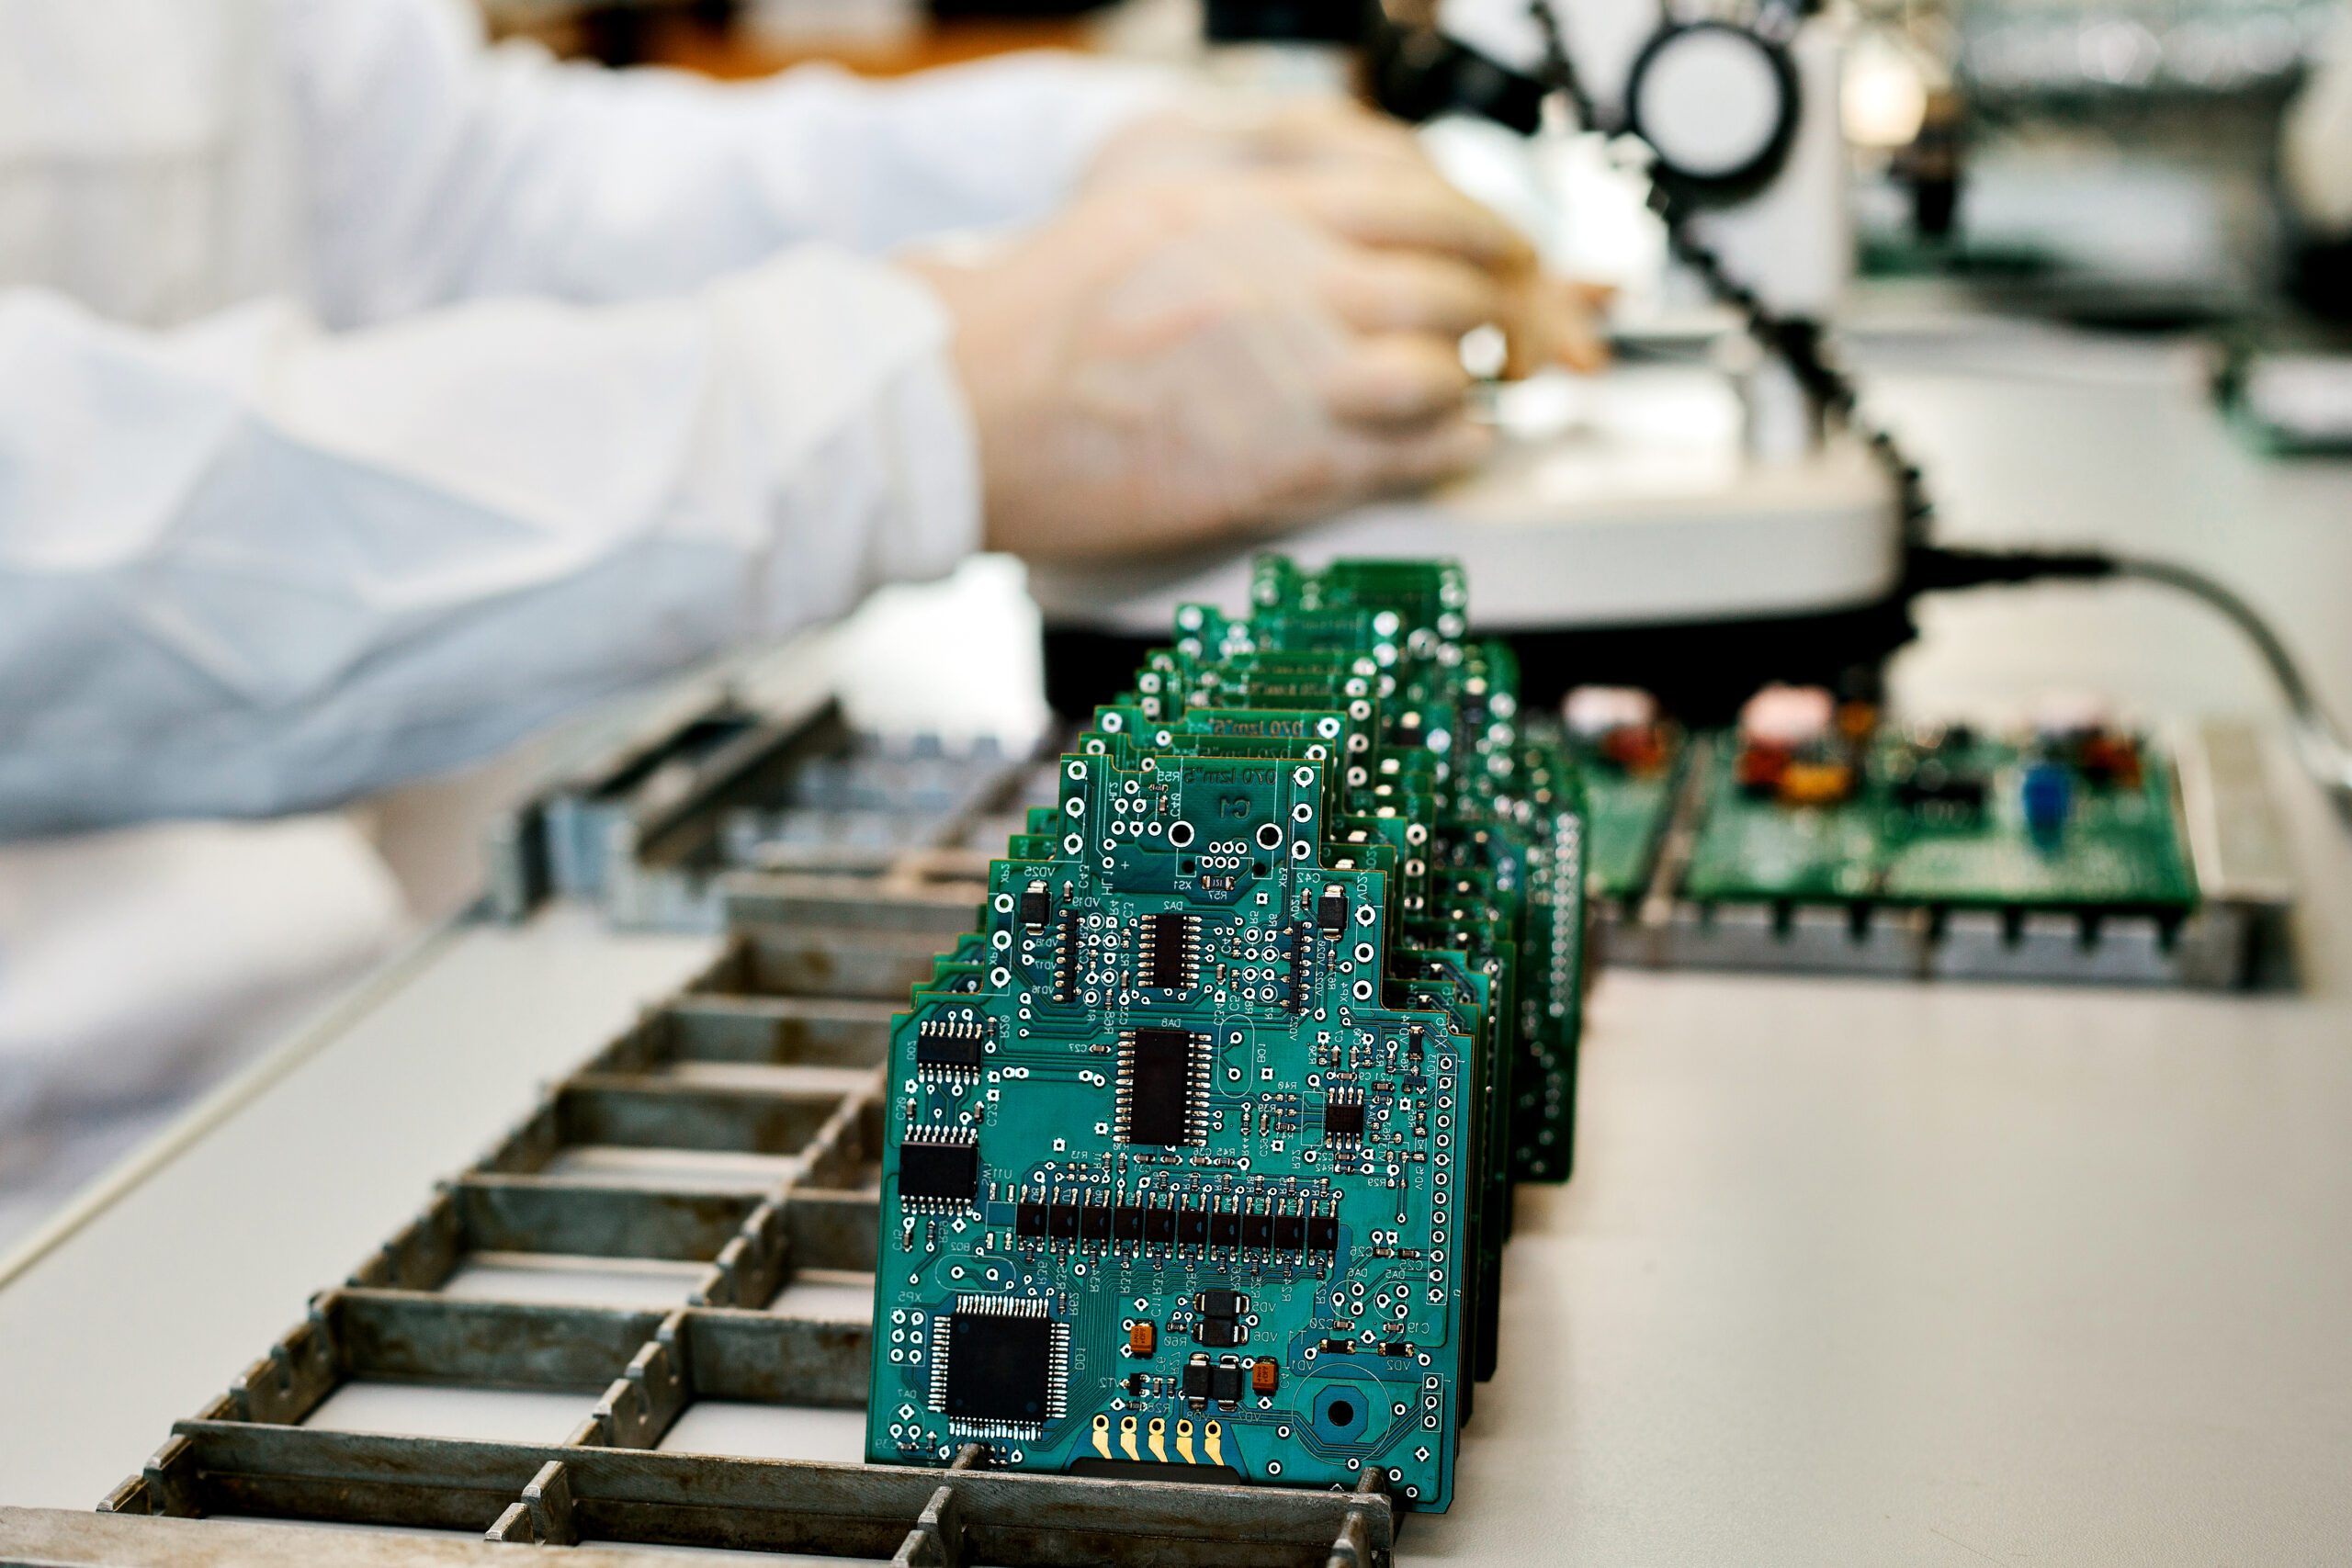 The global chip shortage is affecting every industry.